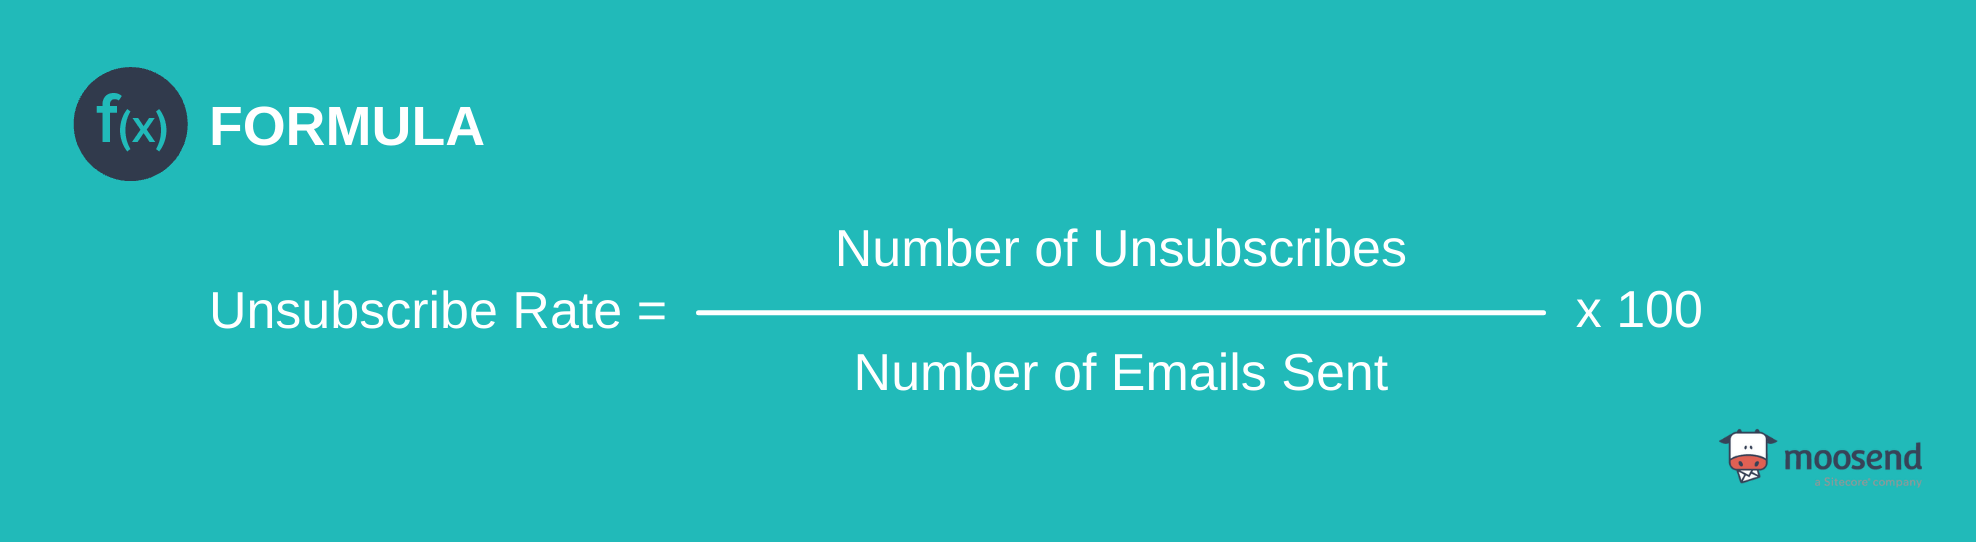 unsubscribe rate calculation